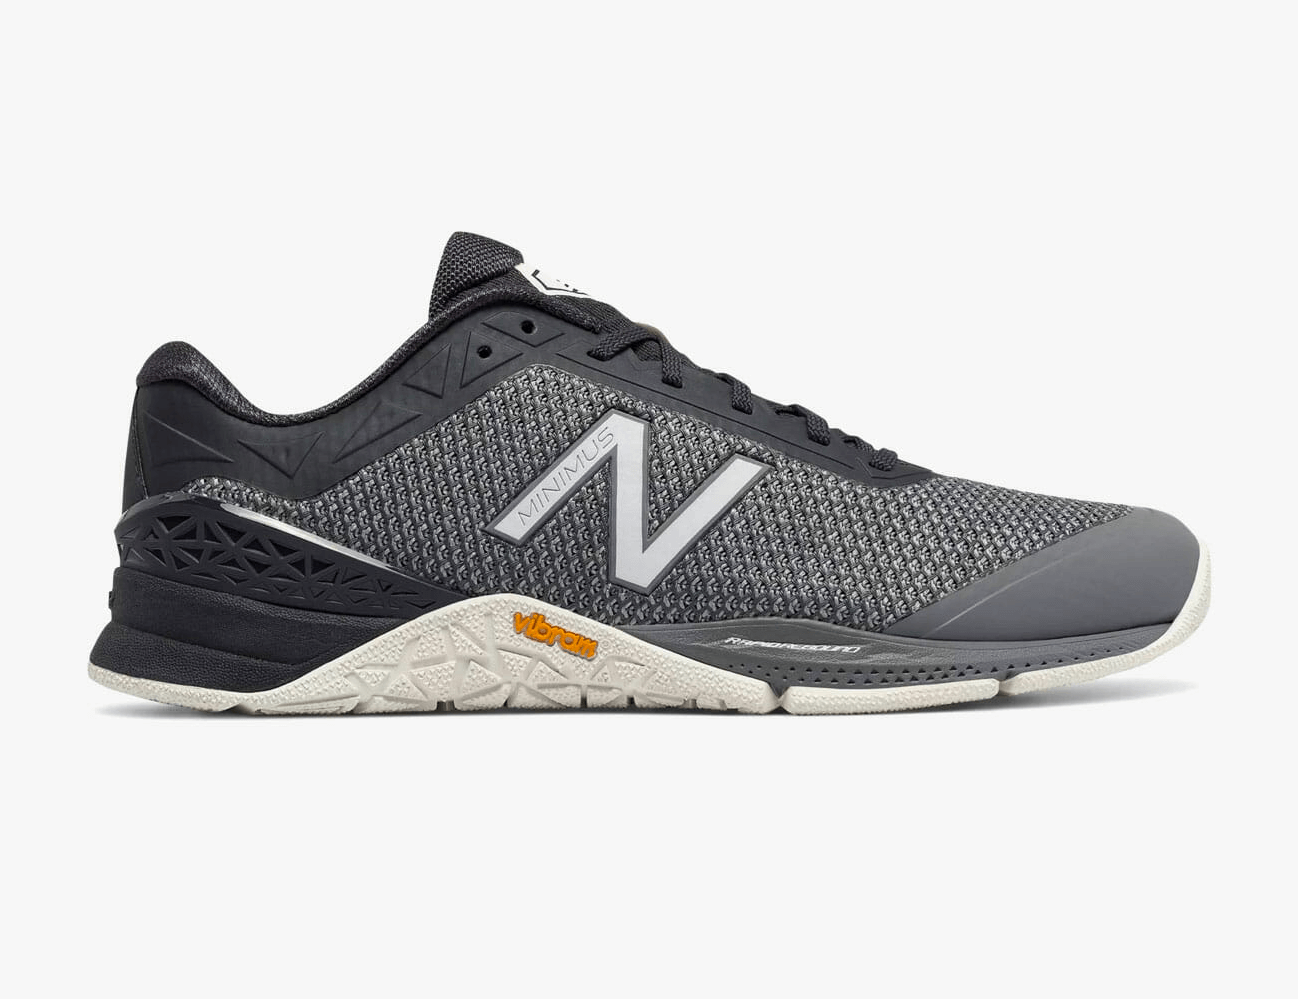 New Balance Minimus 40 Trainer / Ideal for all forms of exercise